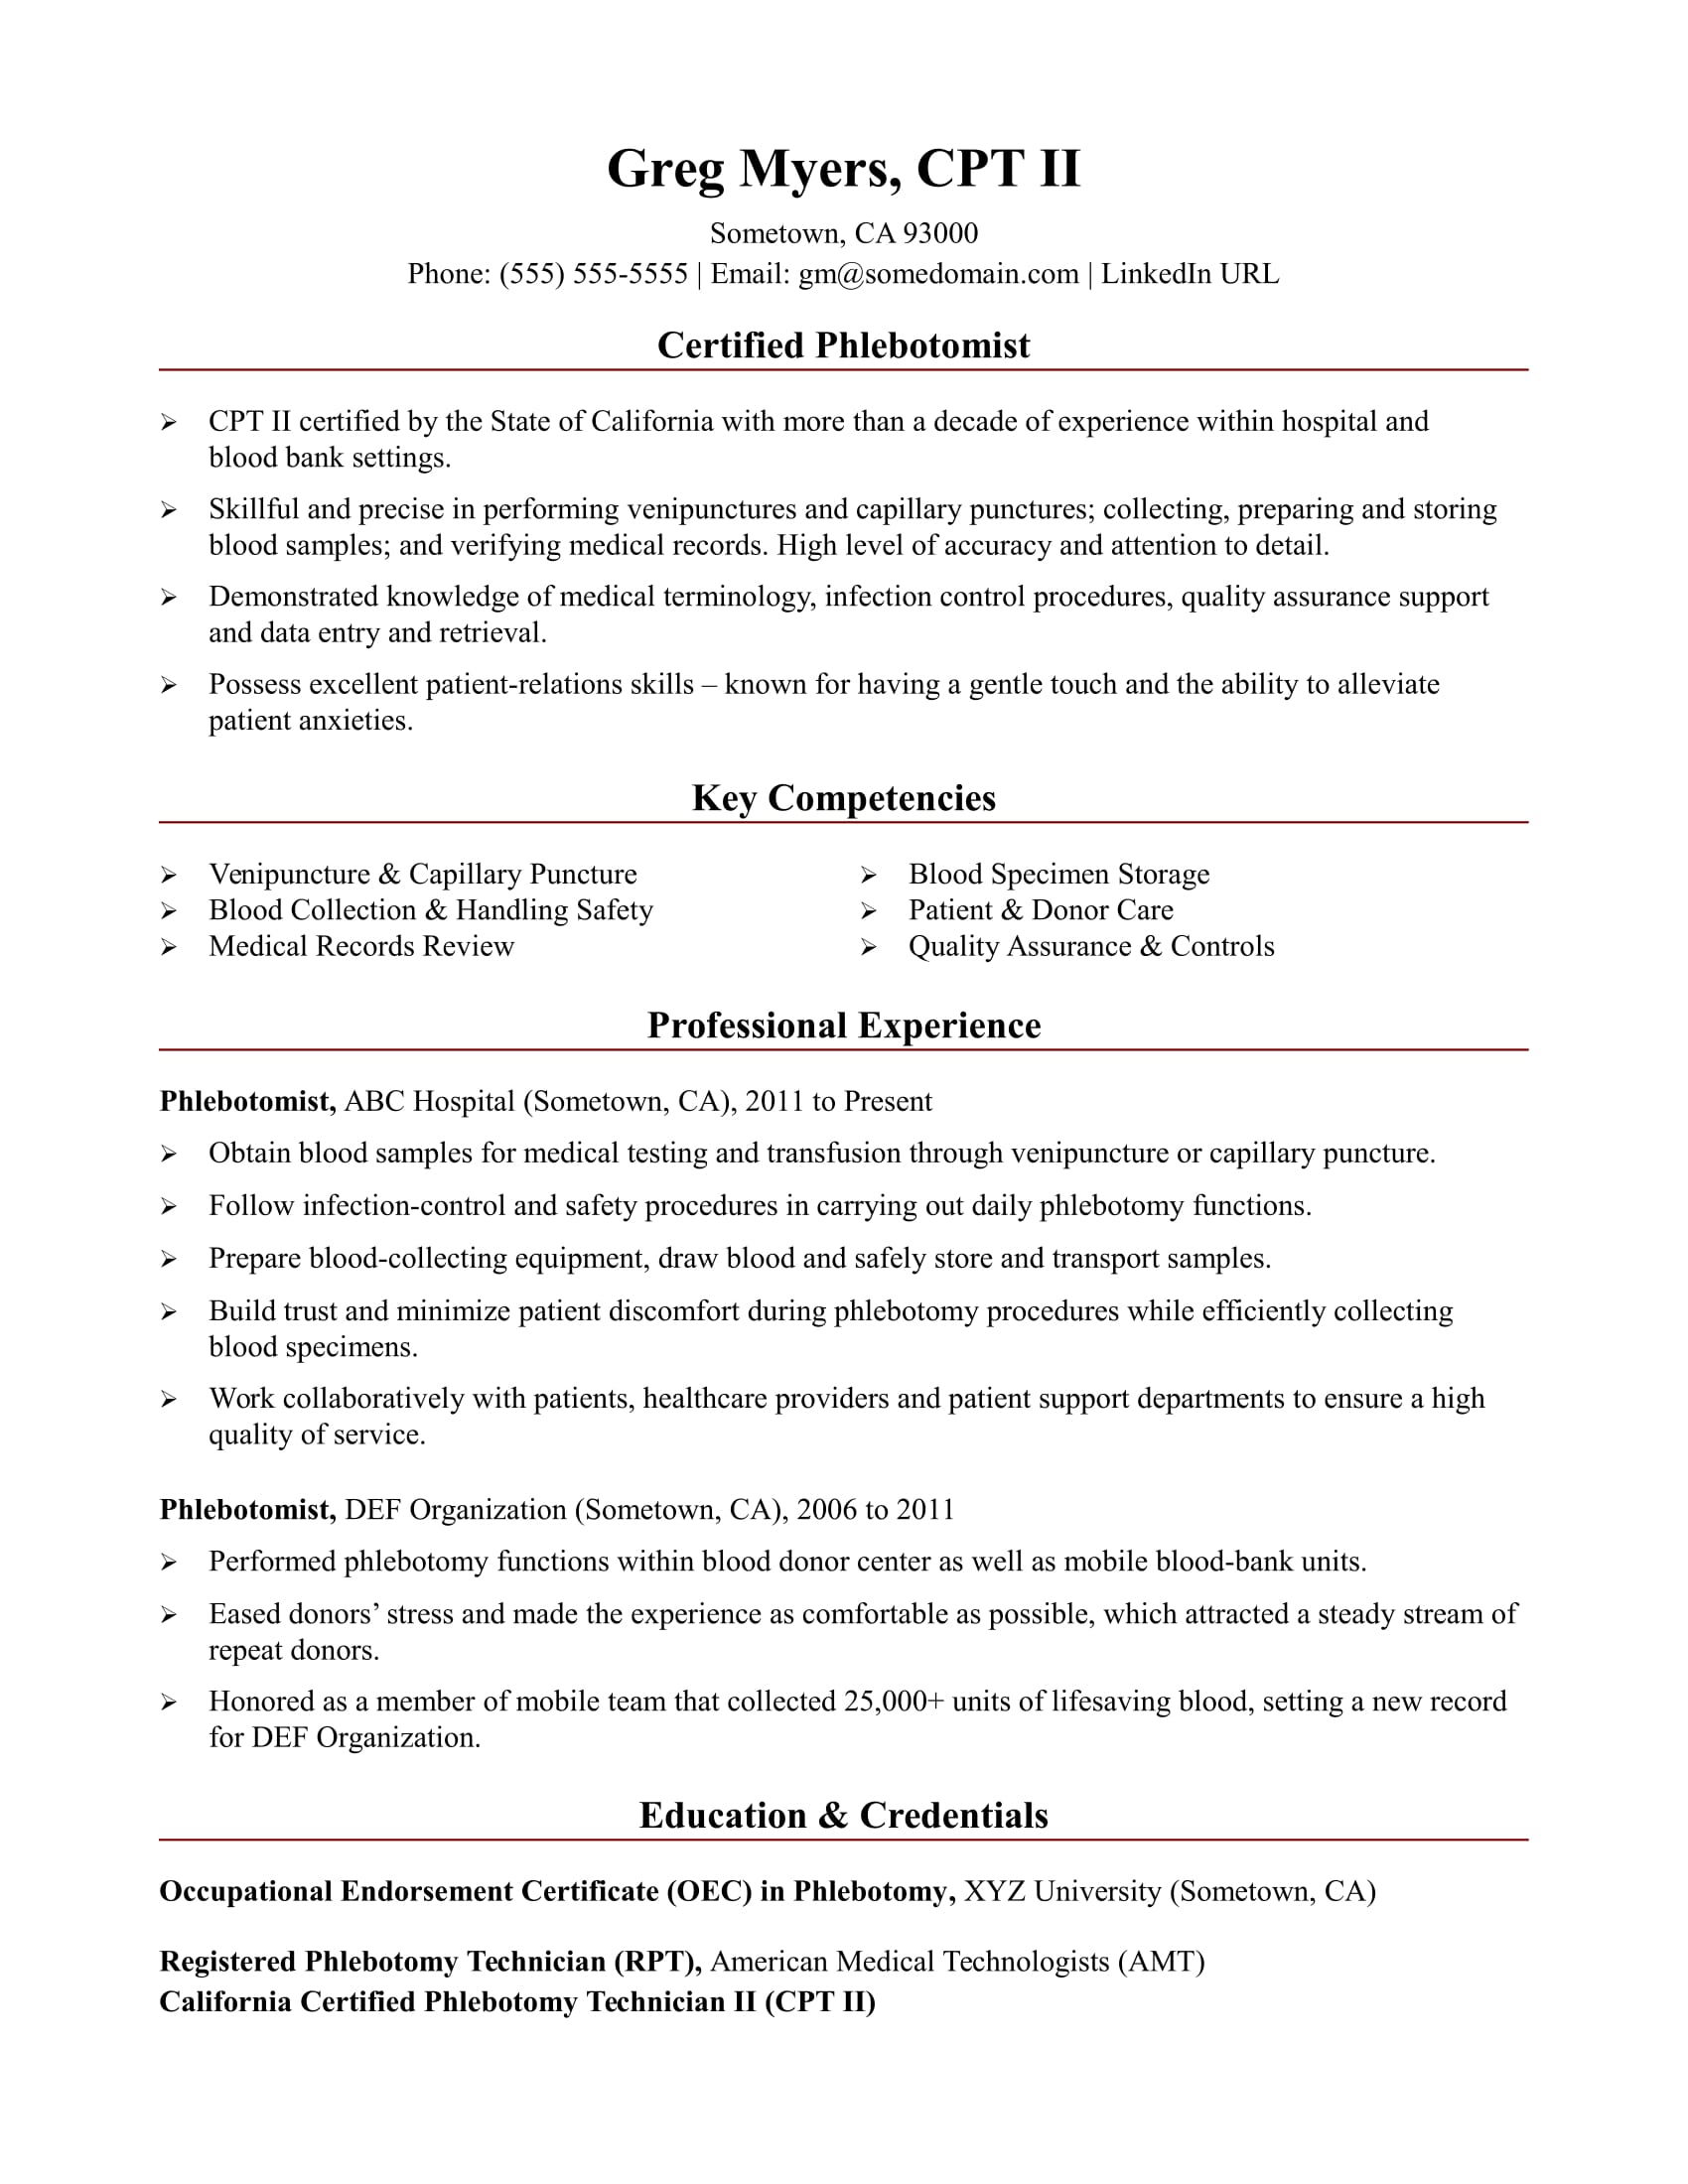 Nice Sample Resume For A Phlebotomist Intended Phlebotomy Resume Examples